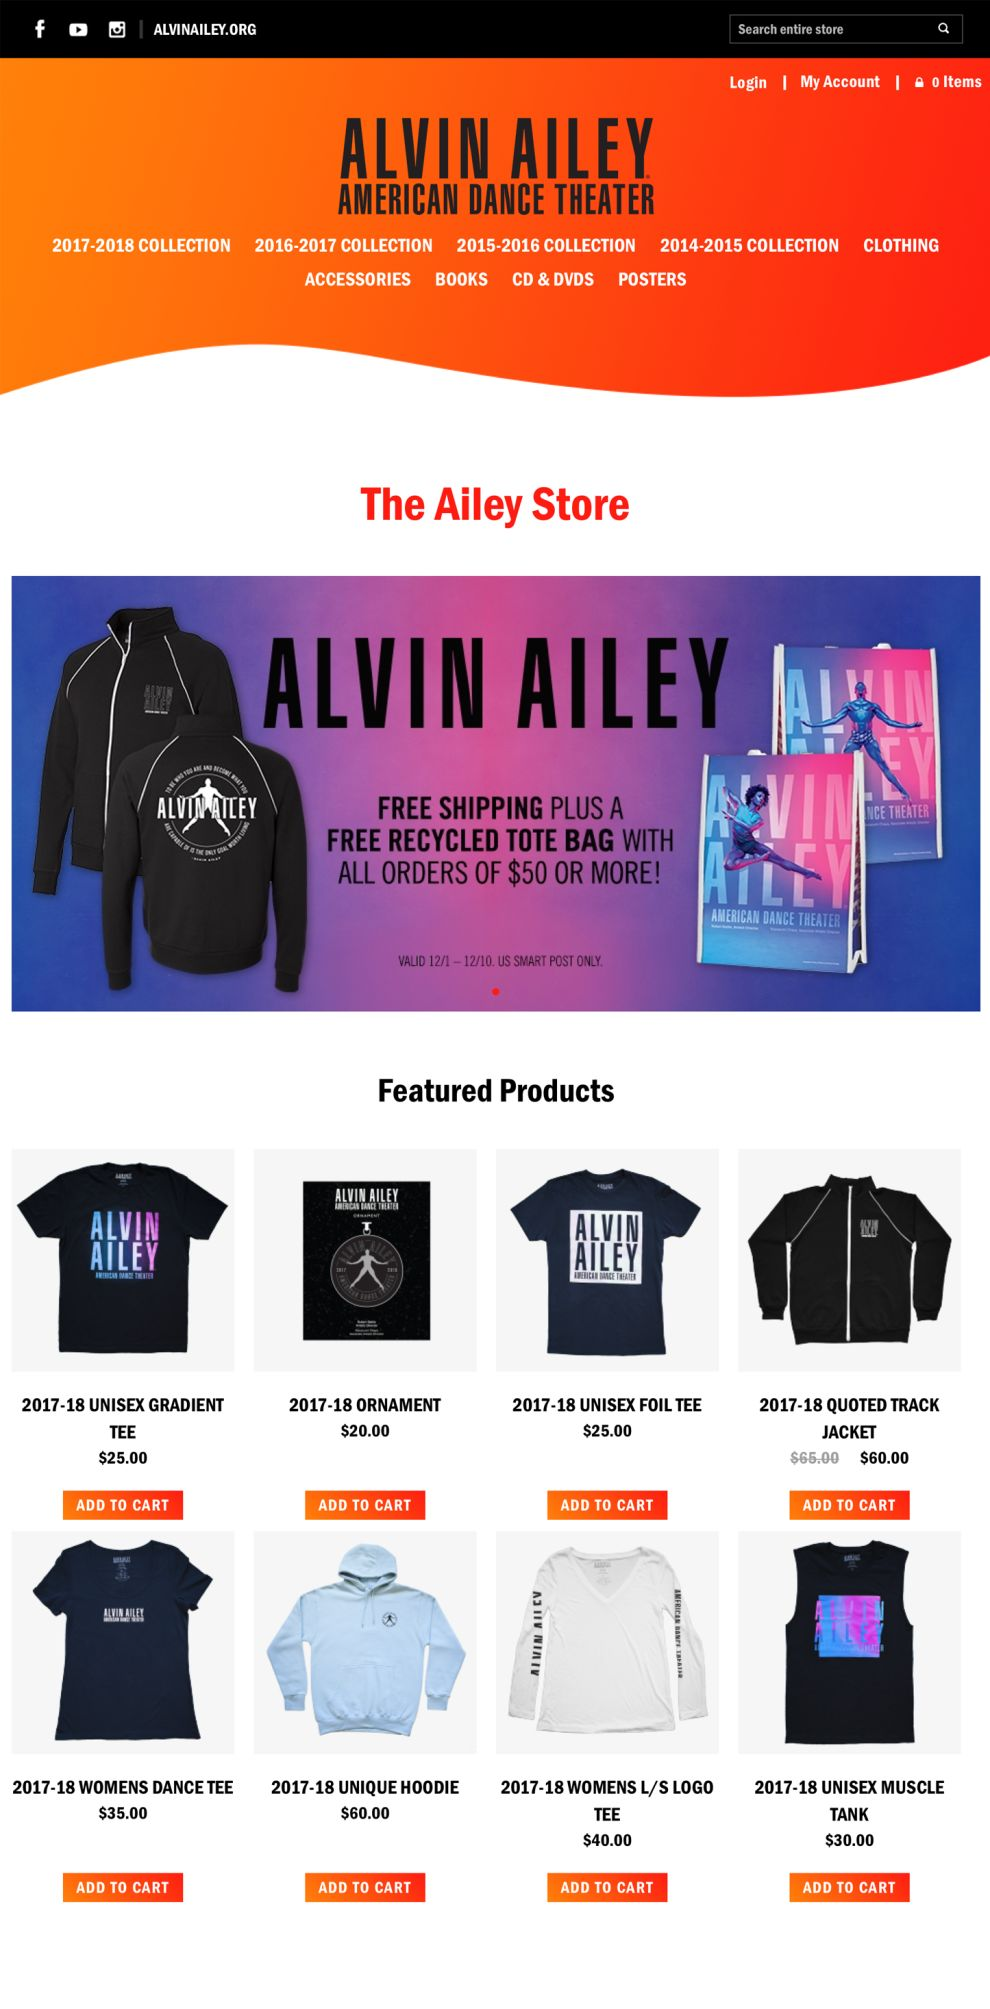 Alvin Ailey Great Product Page